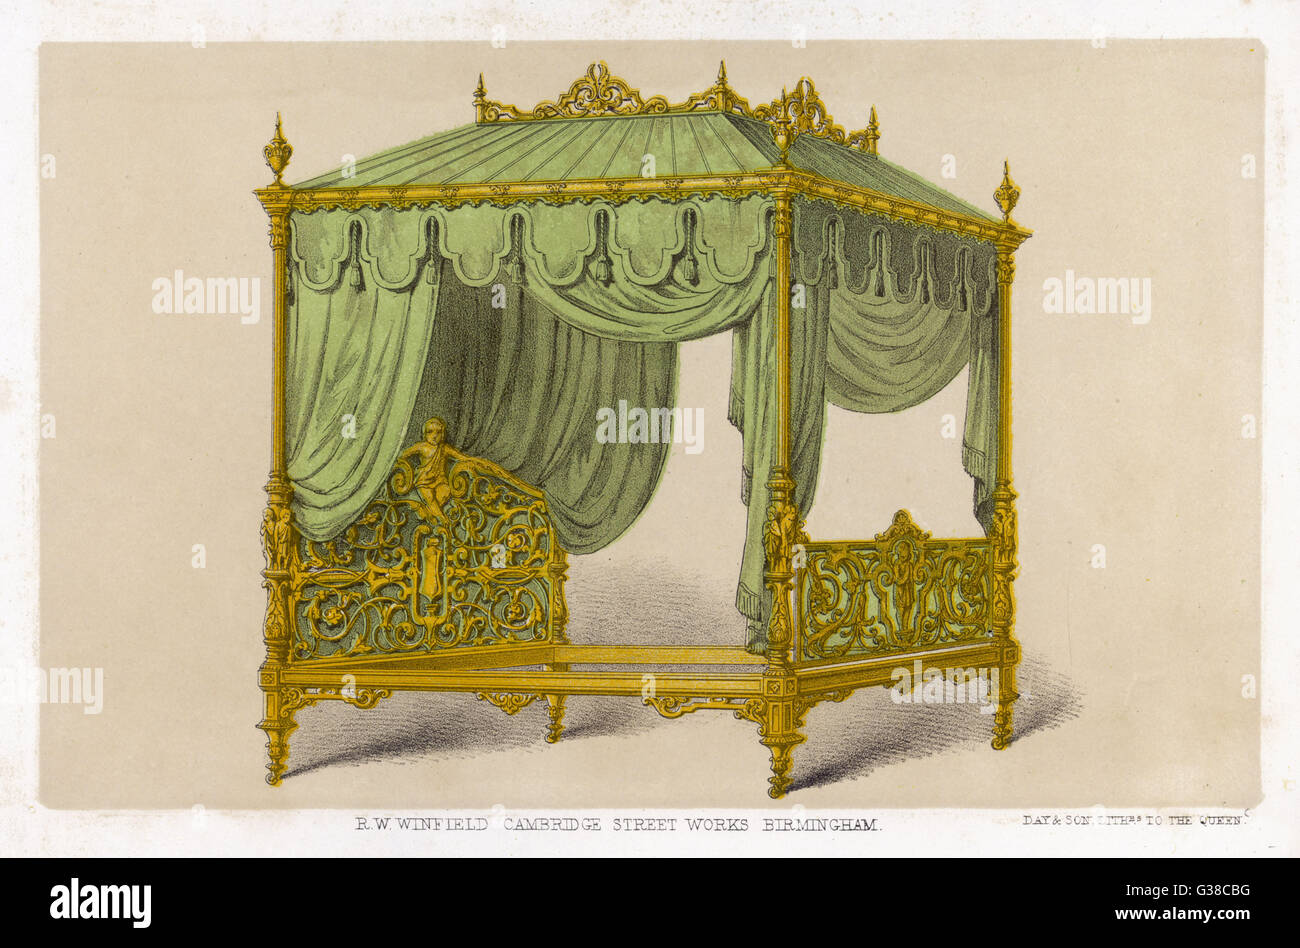 Opulent, gilt bedstead  complete with canopy, fringing  and drapery        Date: 1851 - Stock Image